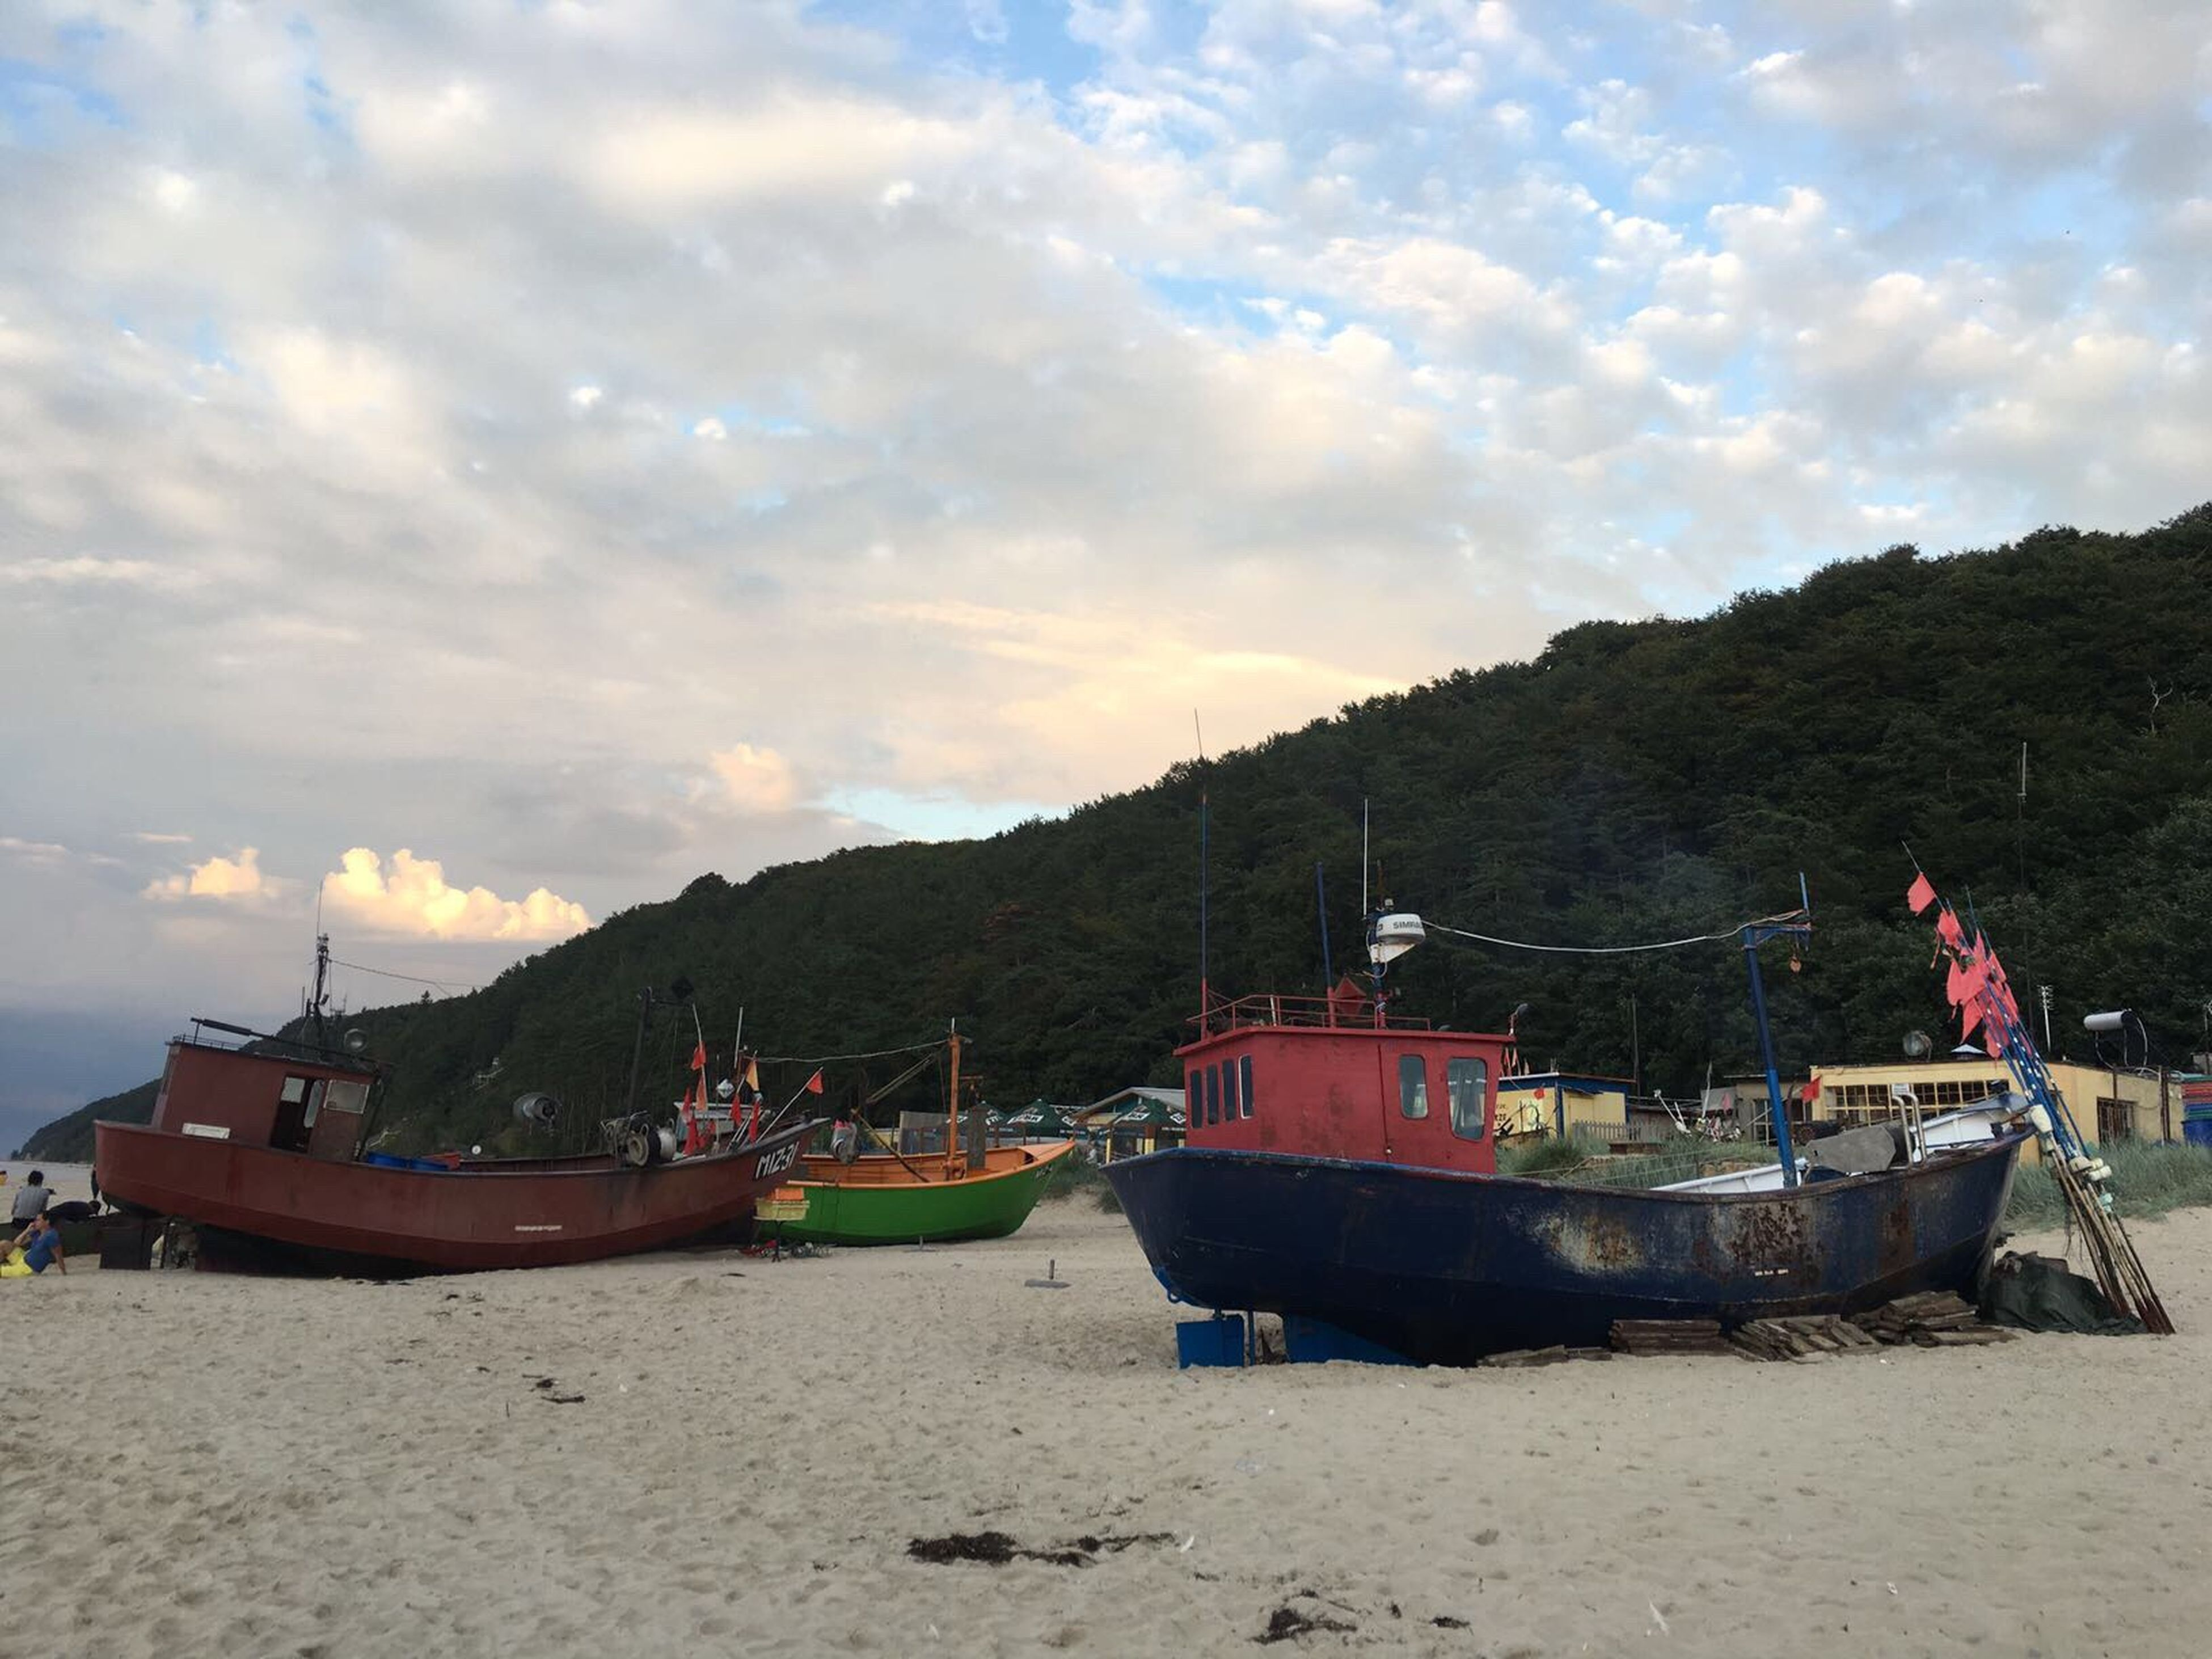 nautical vessel, transportation, boat, mode of transport, moored, water, sea, sky, calm, shore, cloud, tranquility, mountain, tranquil scene, cloudy, cloud - sky, ocean, coastline, fishing boat, nature, ship, day, scenics, outdoors, no people, waterfront, mountain range, tourism, lakeside